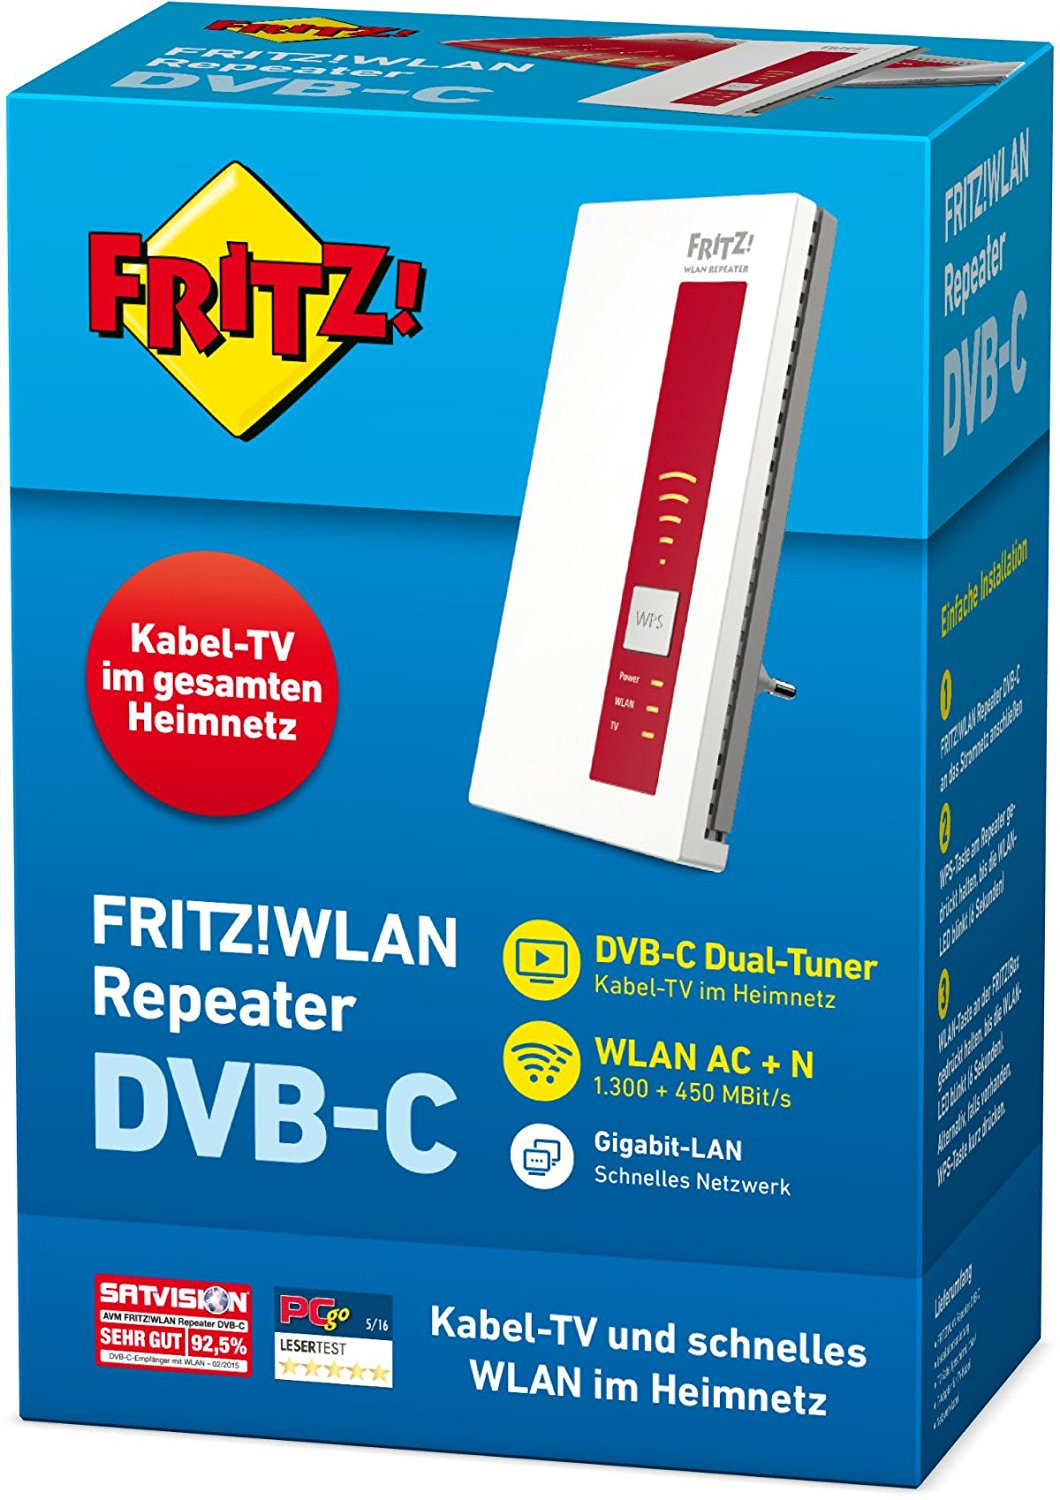 AVM FRITZ!WLAN Repeater DVB-C Dual Tuner für Kabel TV Wireless Video-/Audio